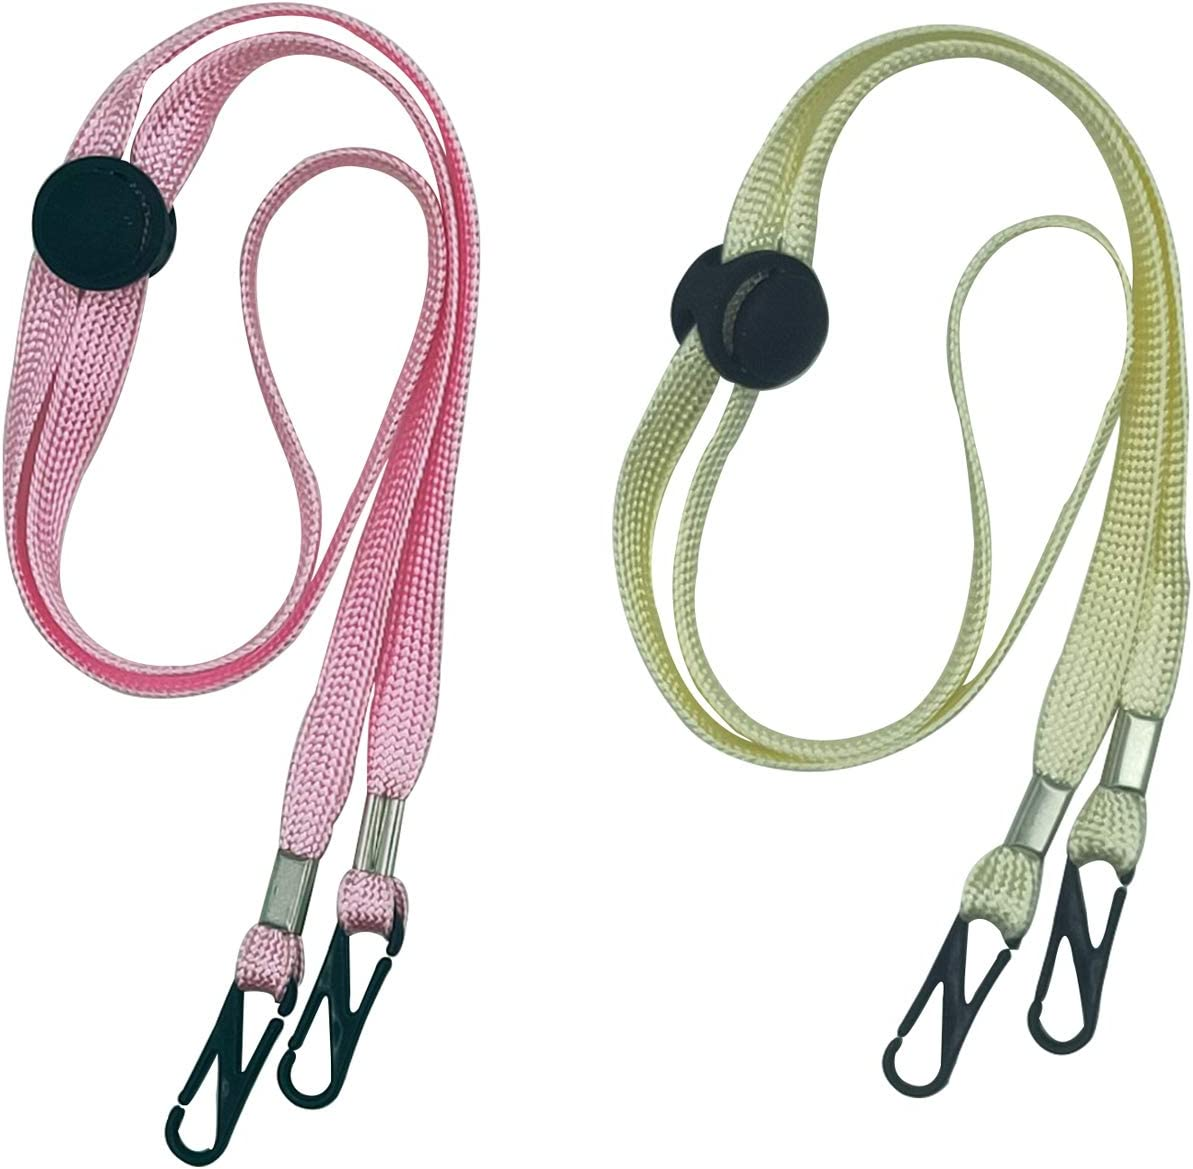 Mixed 5A+5B , styleA+B Adjustable Mask Lanyard for Face Bandanas with Clips 2 Pack Convenient Safety Mask Strap Ear Pressure Relief Lanyards for Adult and Kids